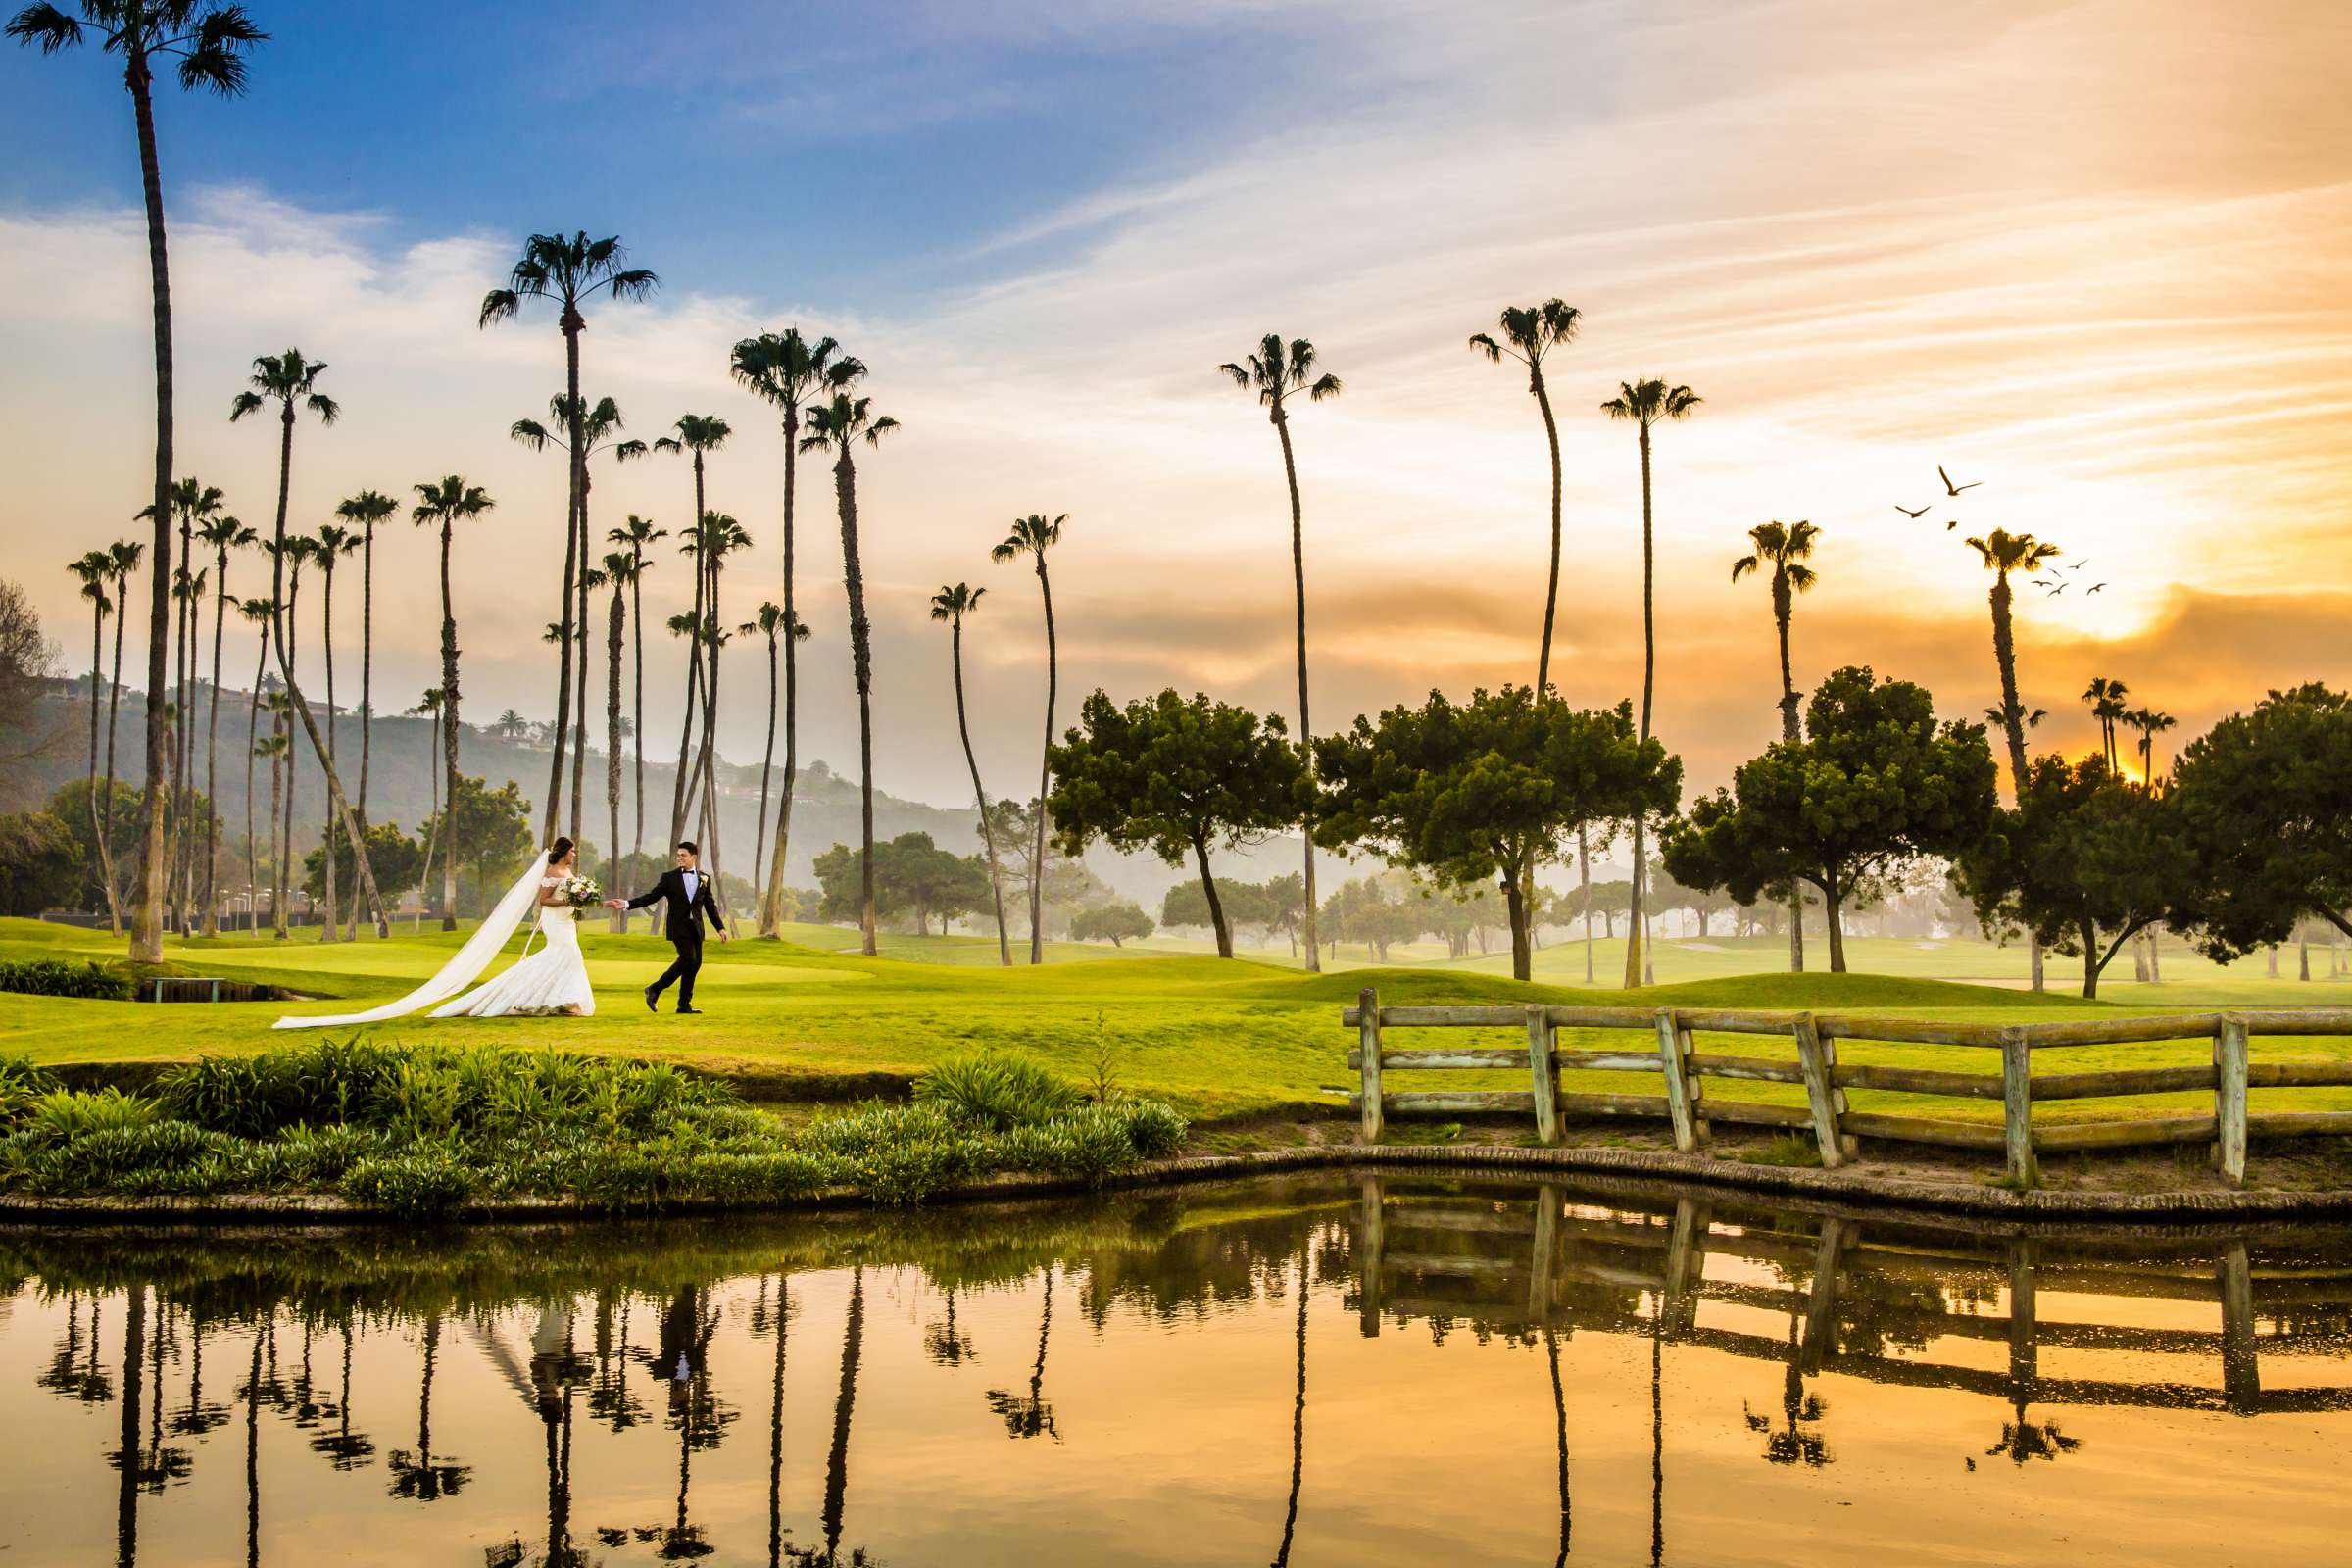 Reflection at Fairbanks Ranch Country Club Wedding coordinated by Lavish Weddings, Carmi and Loriel Wedding Photo #337396 by True Photography